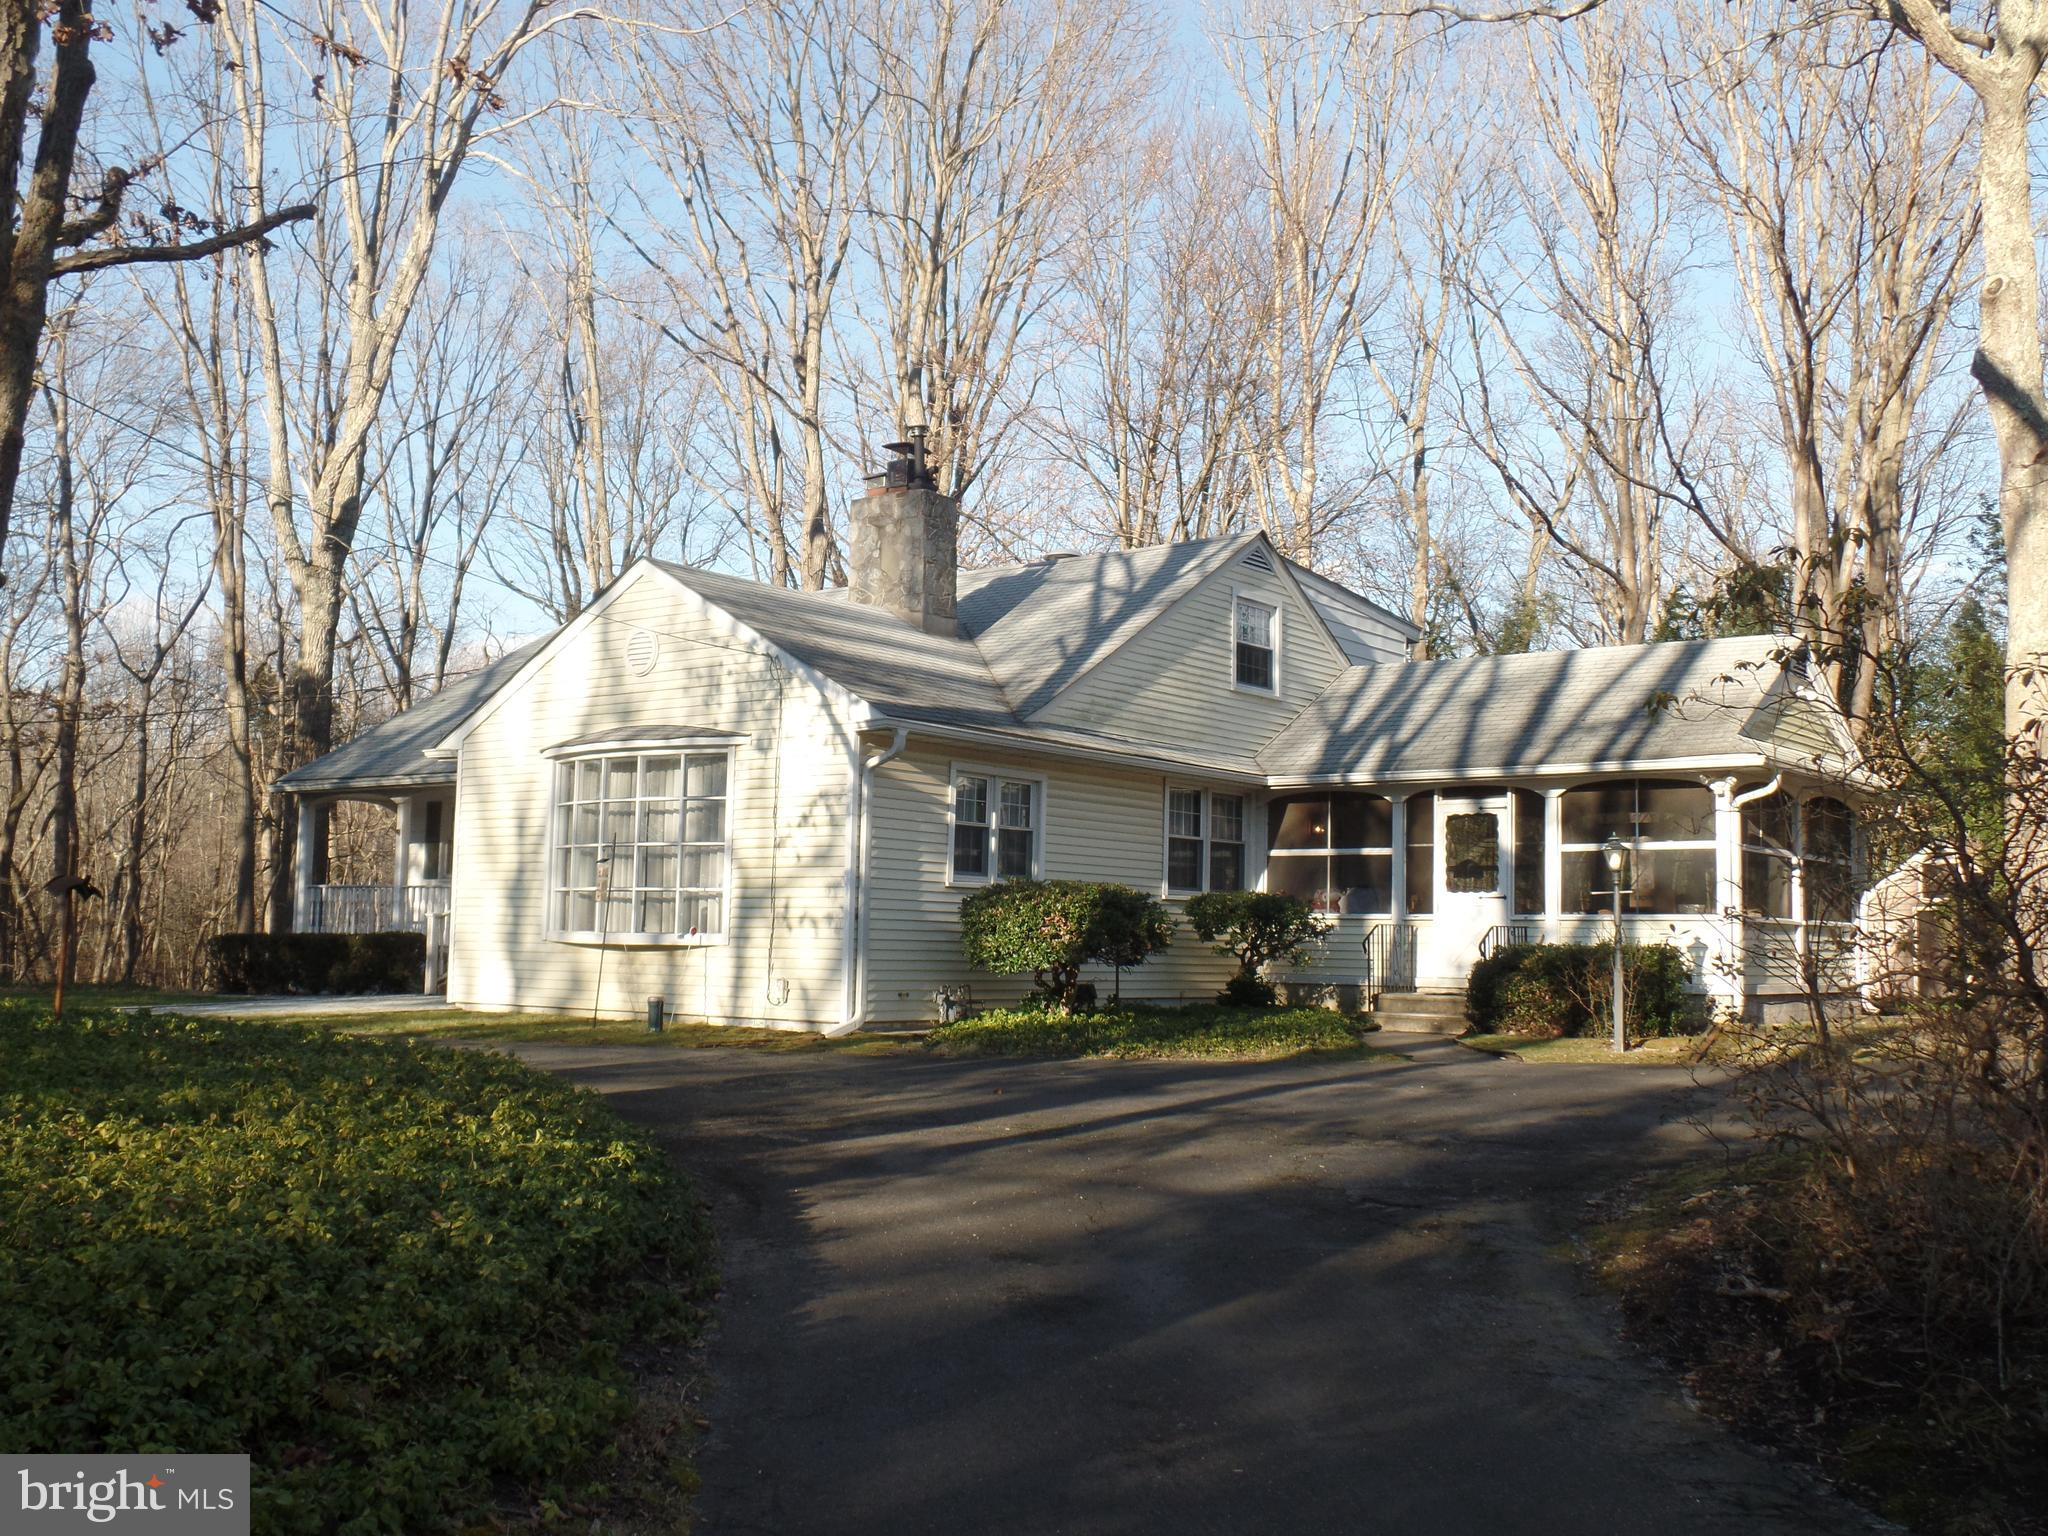 93 BERLIN ROAD, GIBBSBORO, NJ 08026